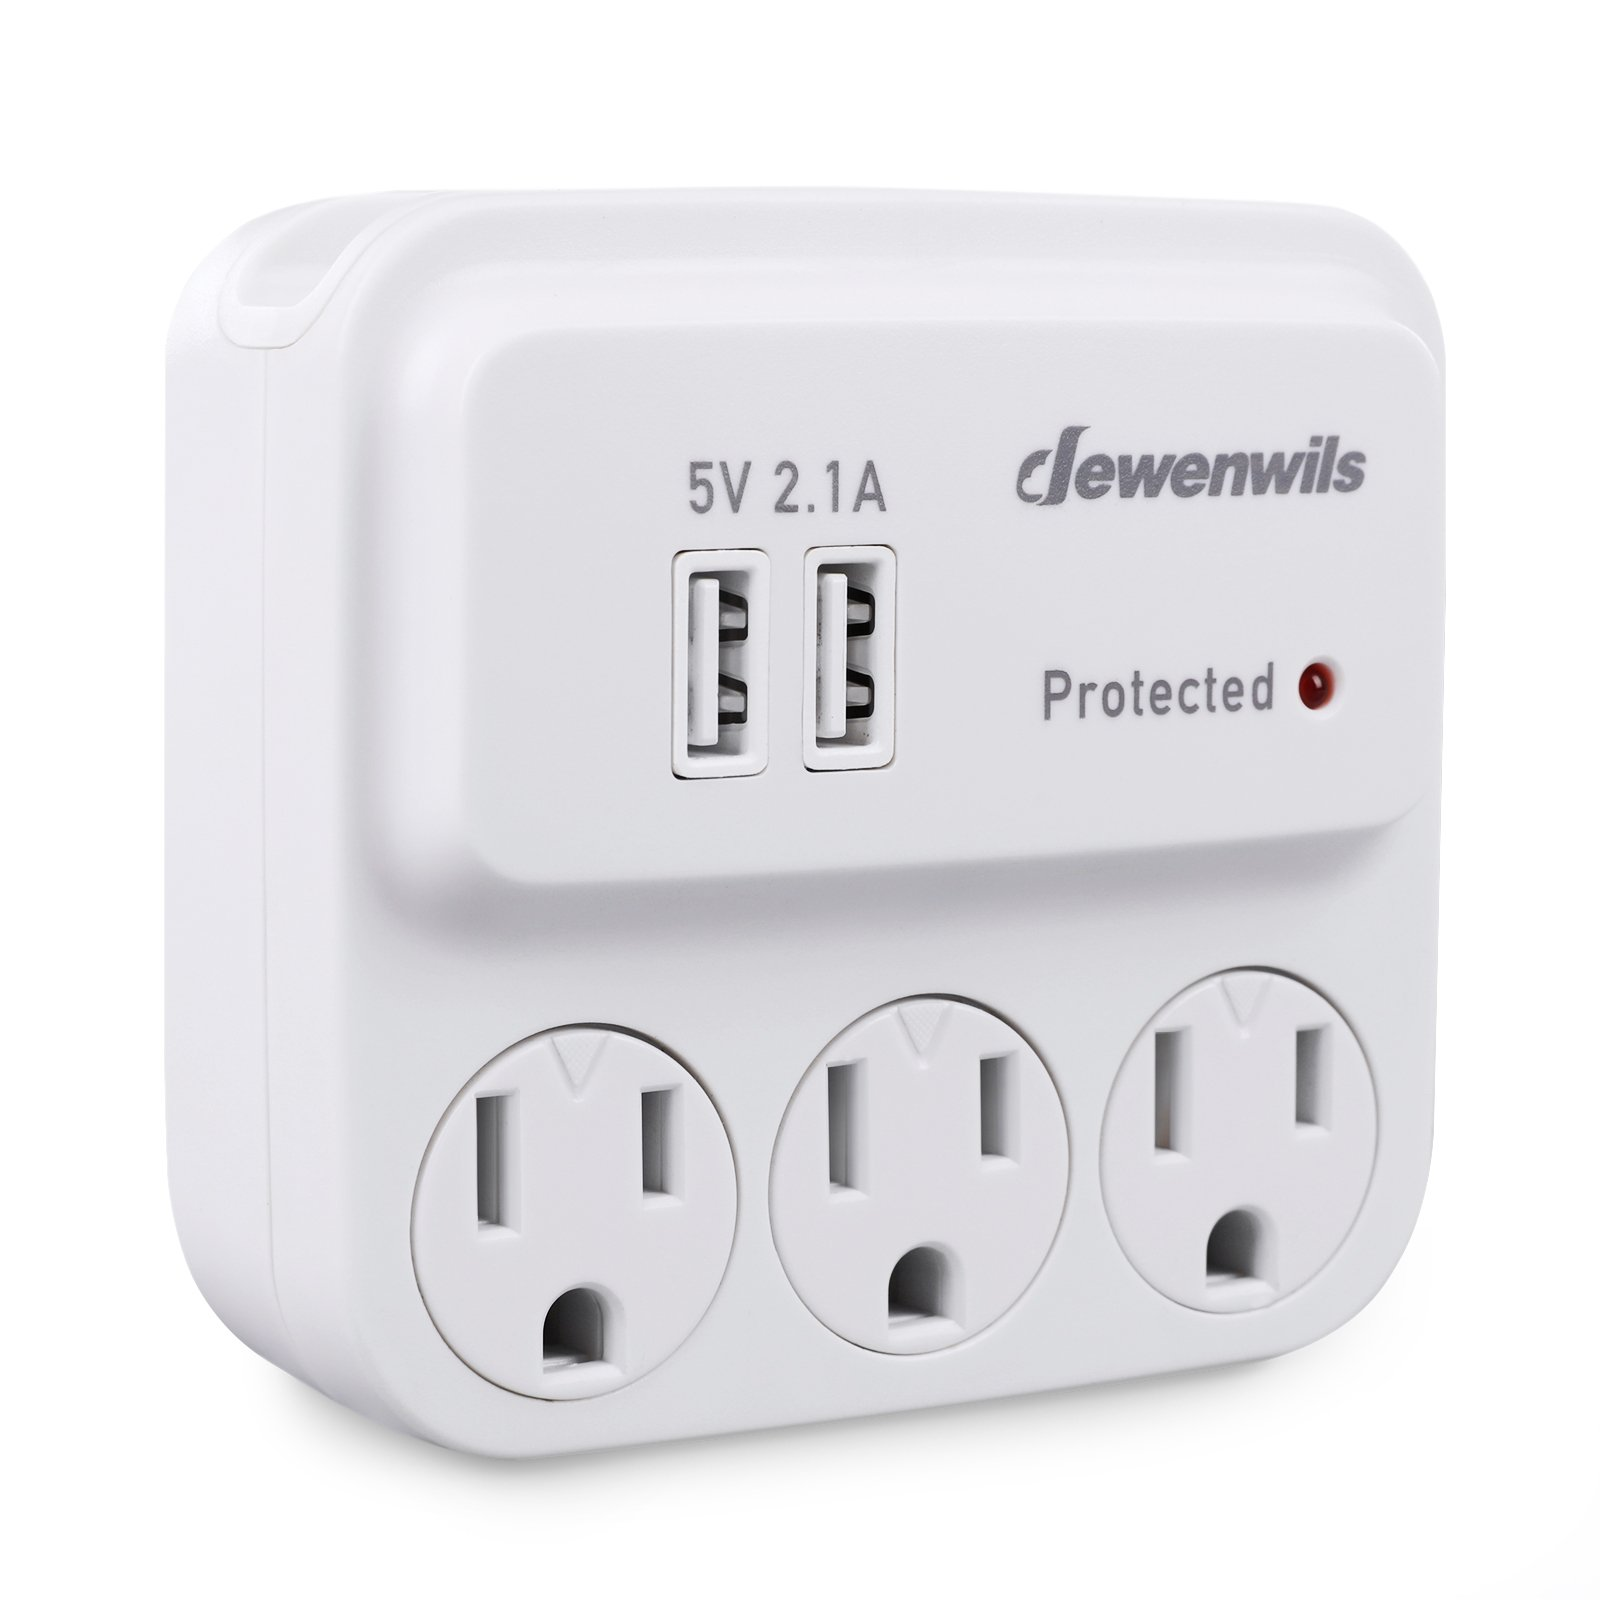 Dewenwils 3-Outlet Surge Protector Wall Plug with 2 USB Charging Ports and Phone Holder, Multi Outlet Wall Adapter for Home/Travel Use, UL Listed, White